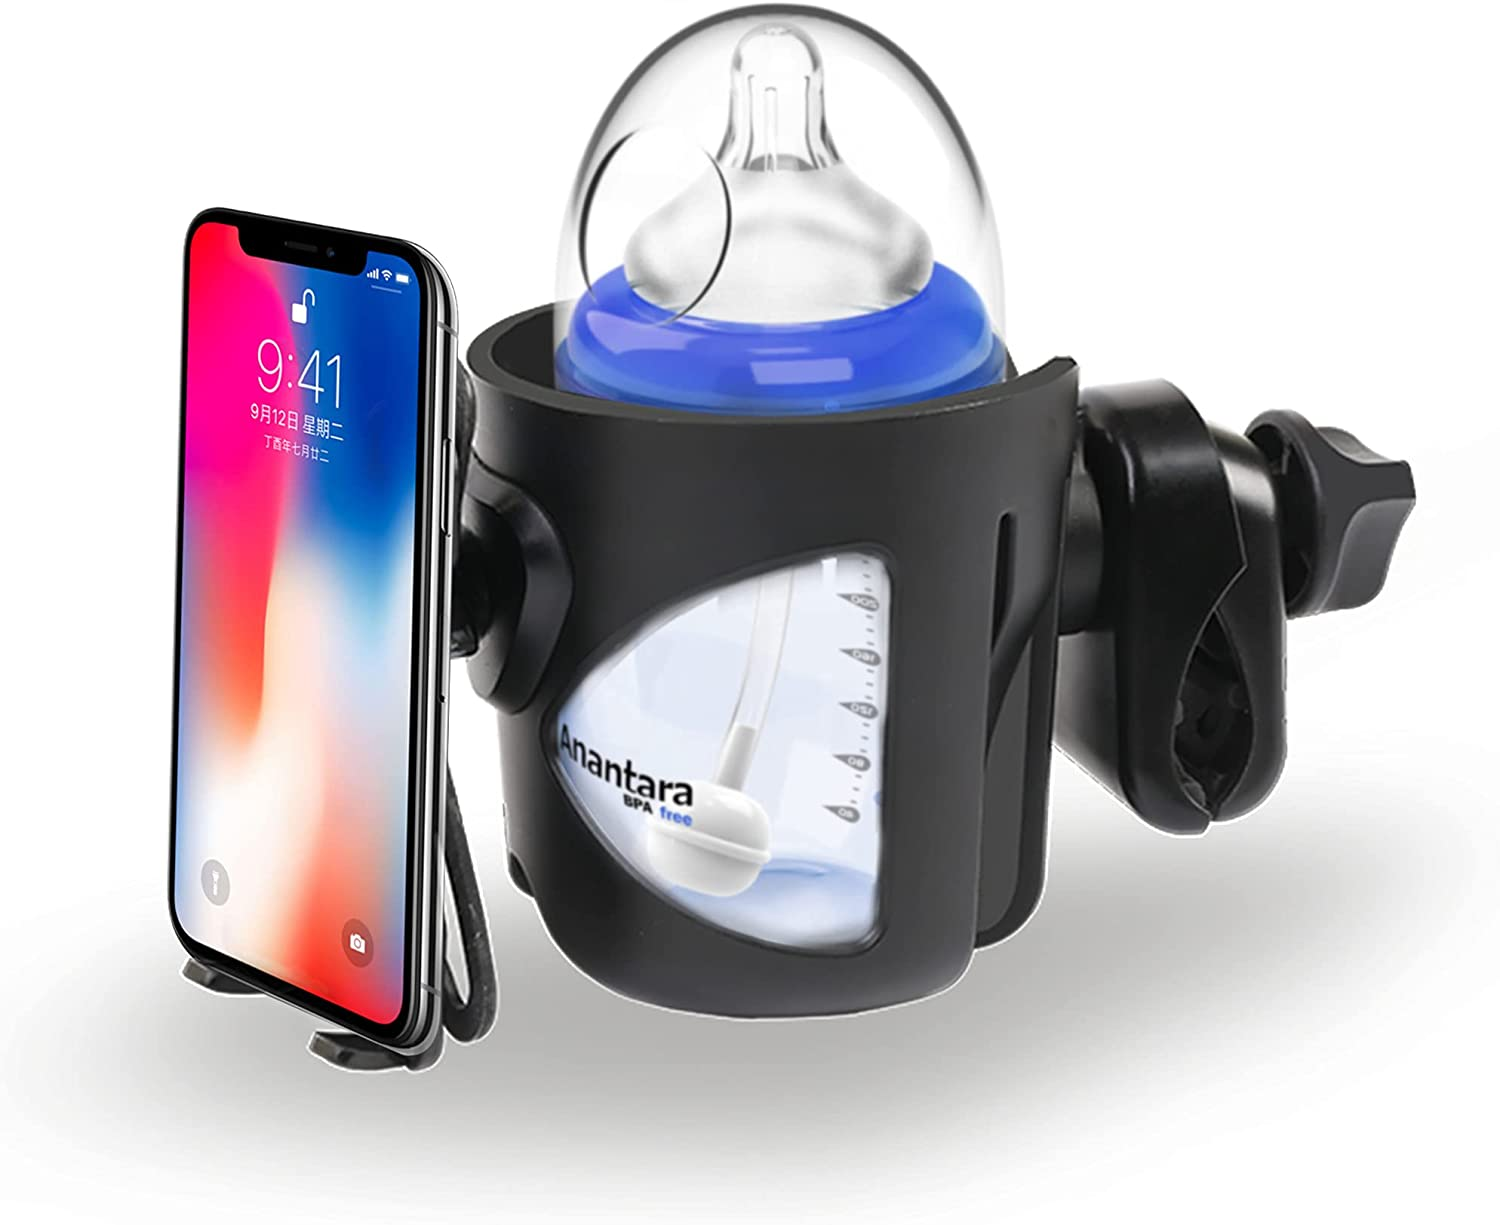 O-Warebaby Stroller Cup Holder, Stroller Cup and Phone Holder 2 in 1 Universal Cup Holder Bike Bottle Holder 360 Degrees Rotation Large Caliber Designed Fit for Baby Stroller Bicycle Trolleys and More